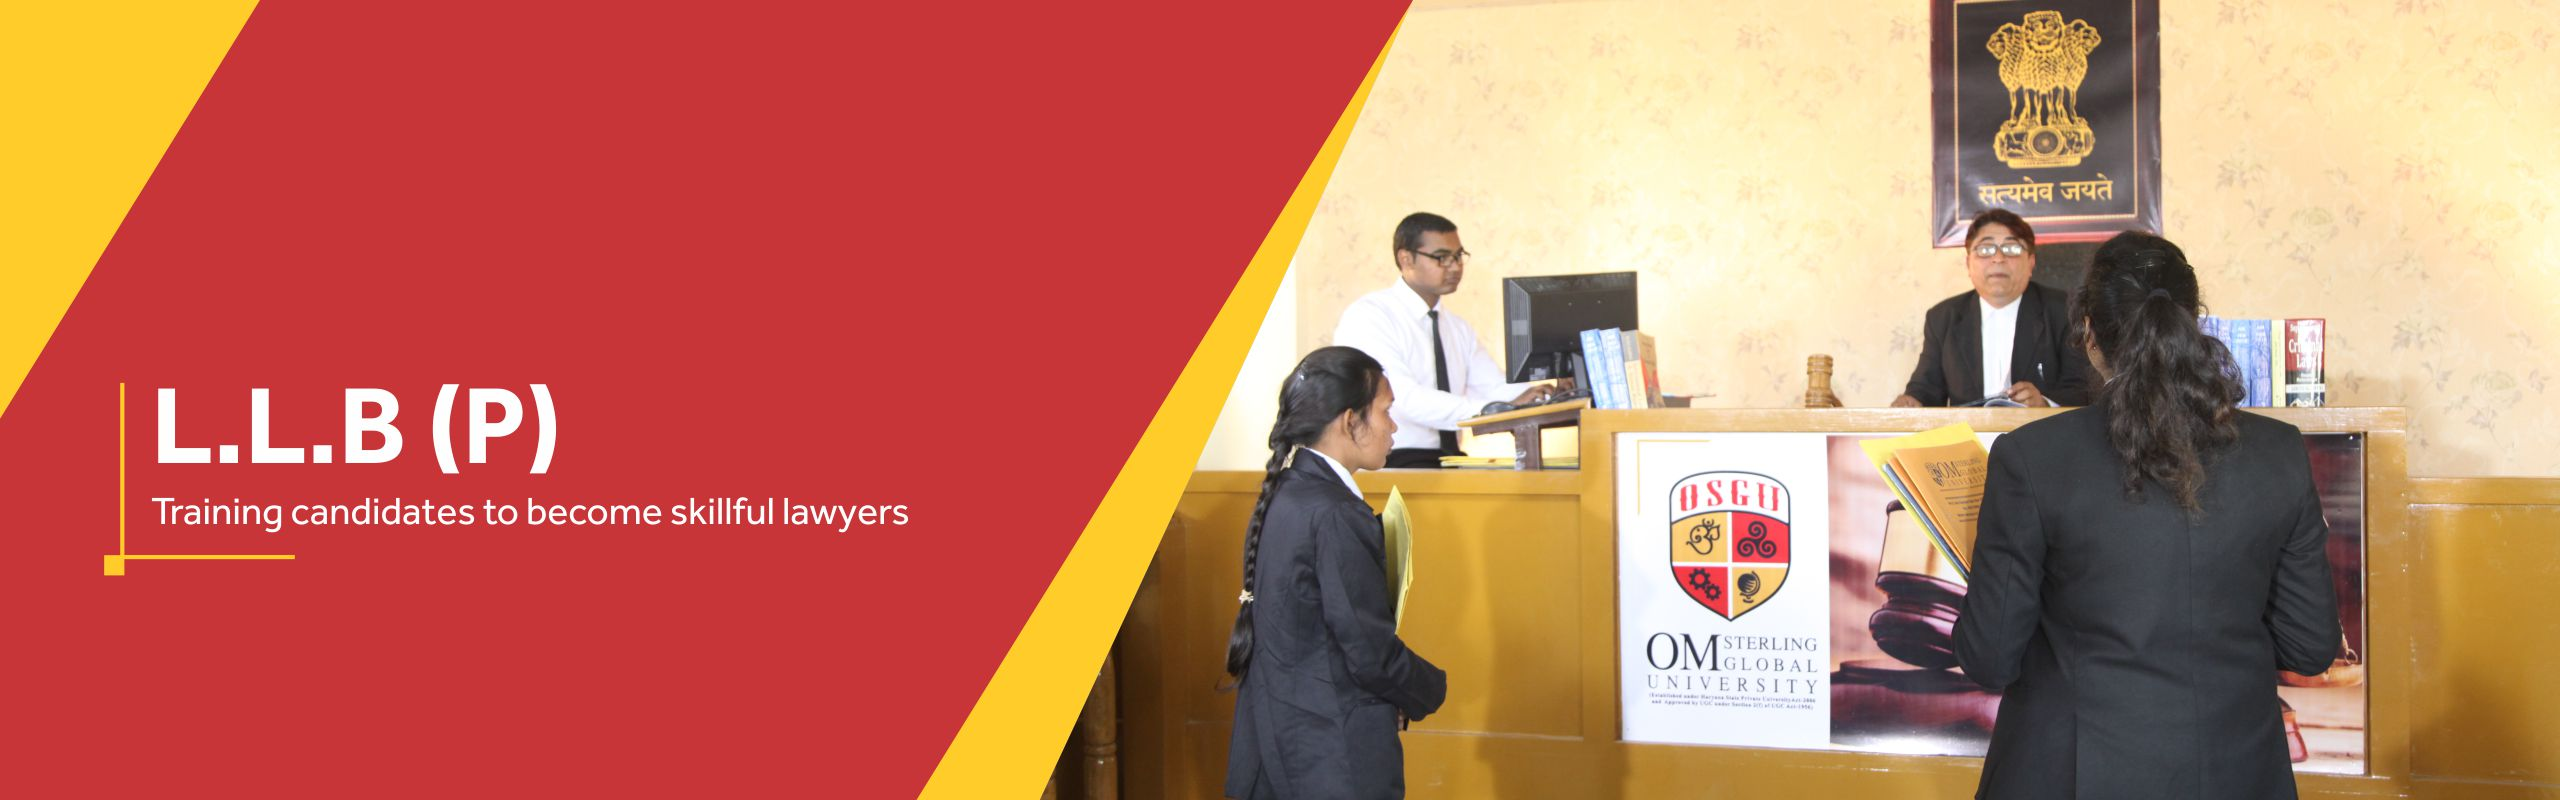 LL.B. (Professional) Course/College in Haryana, India